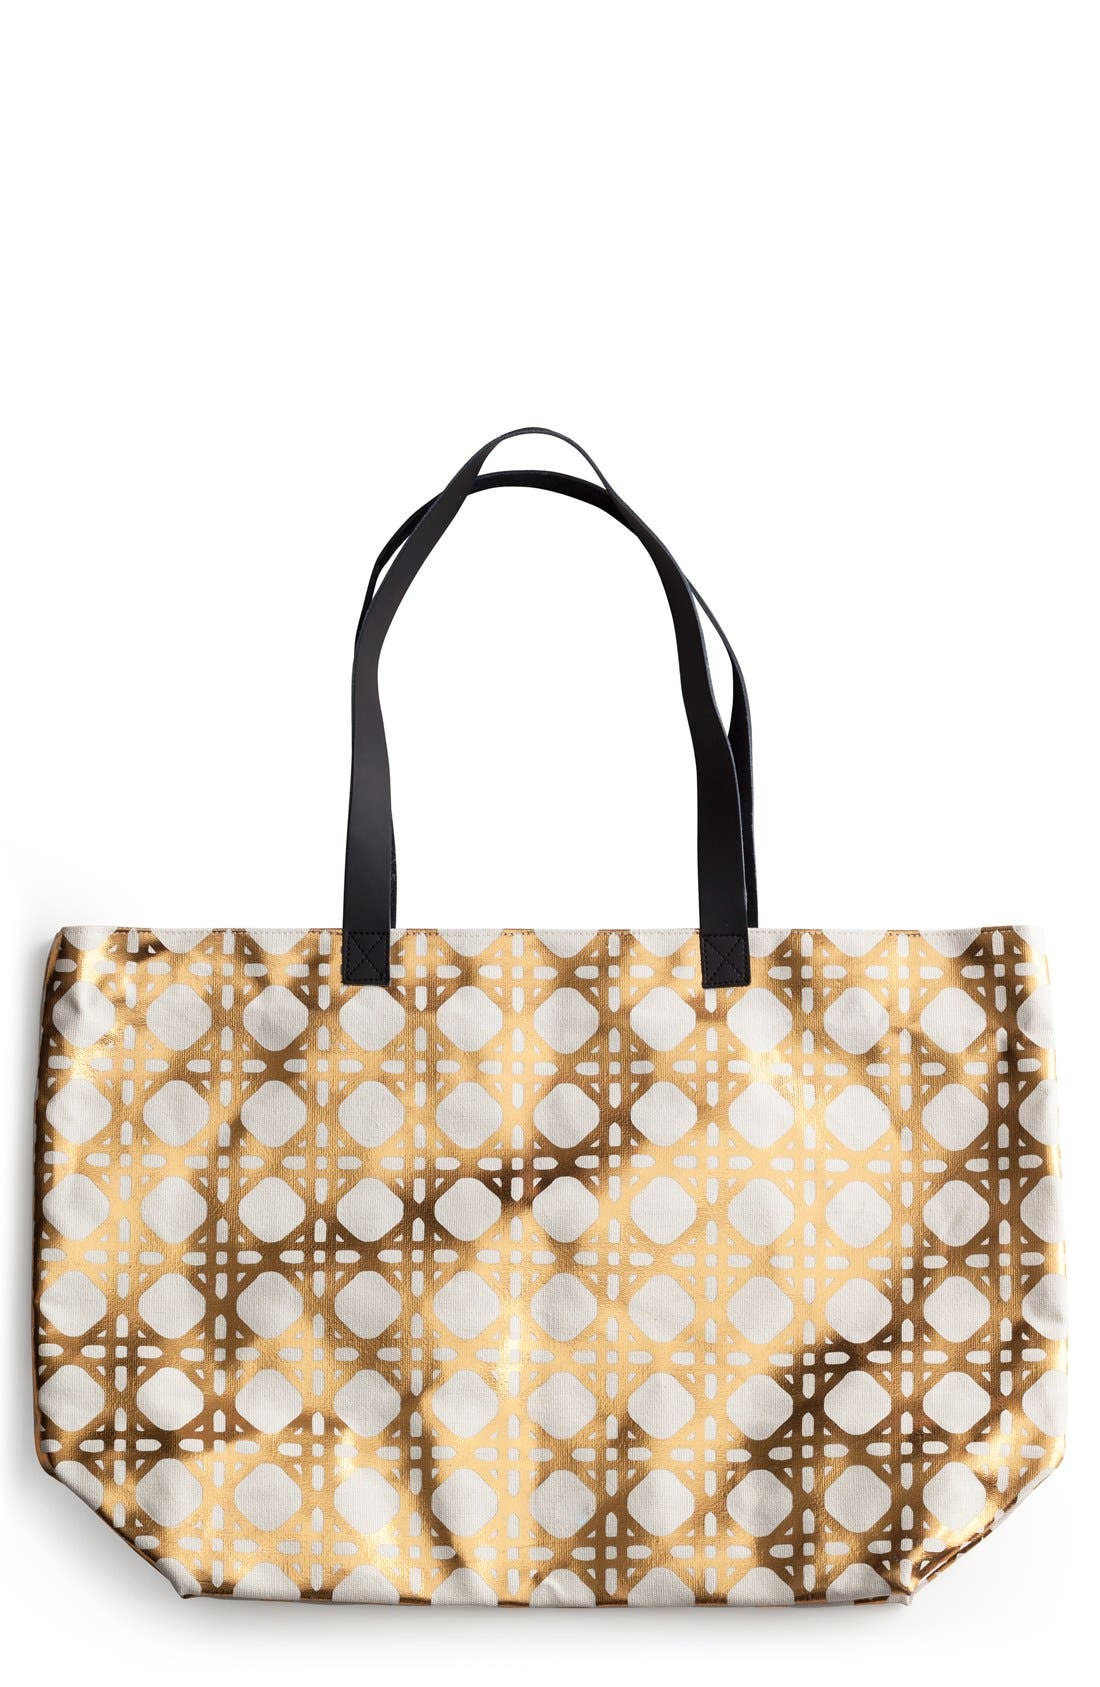 'Trellis' Tote,                             Main thumbnail 1, color,                             Metallic Gold